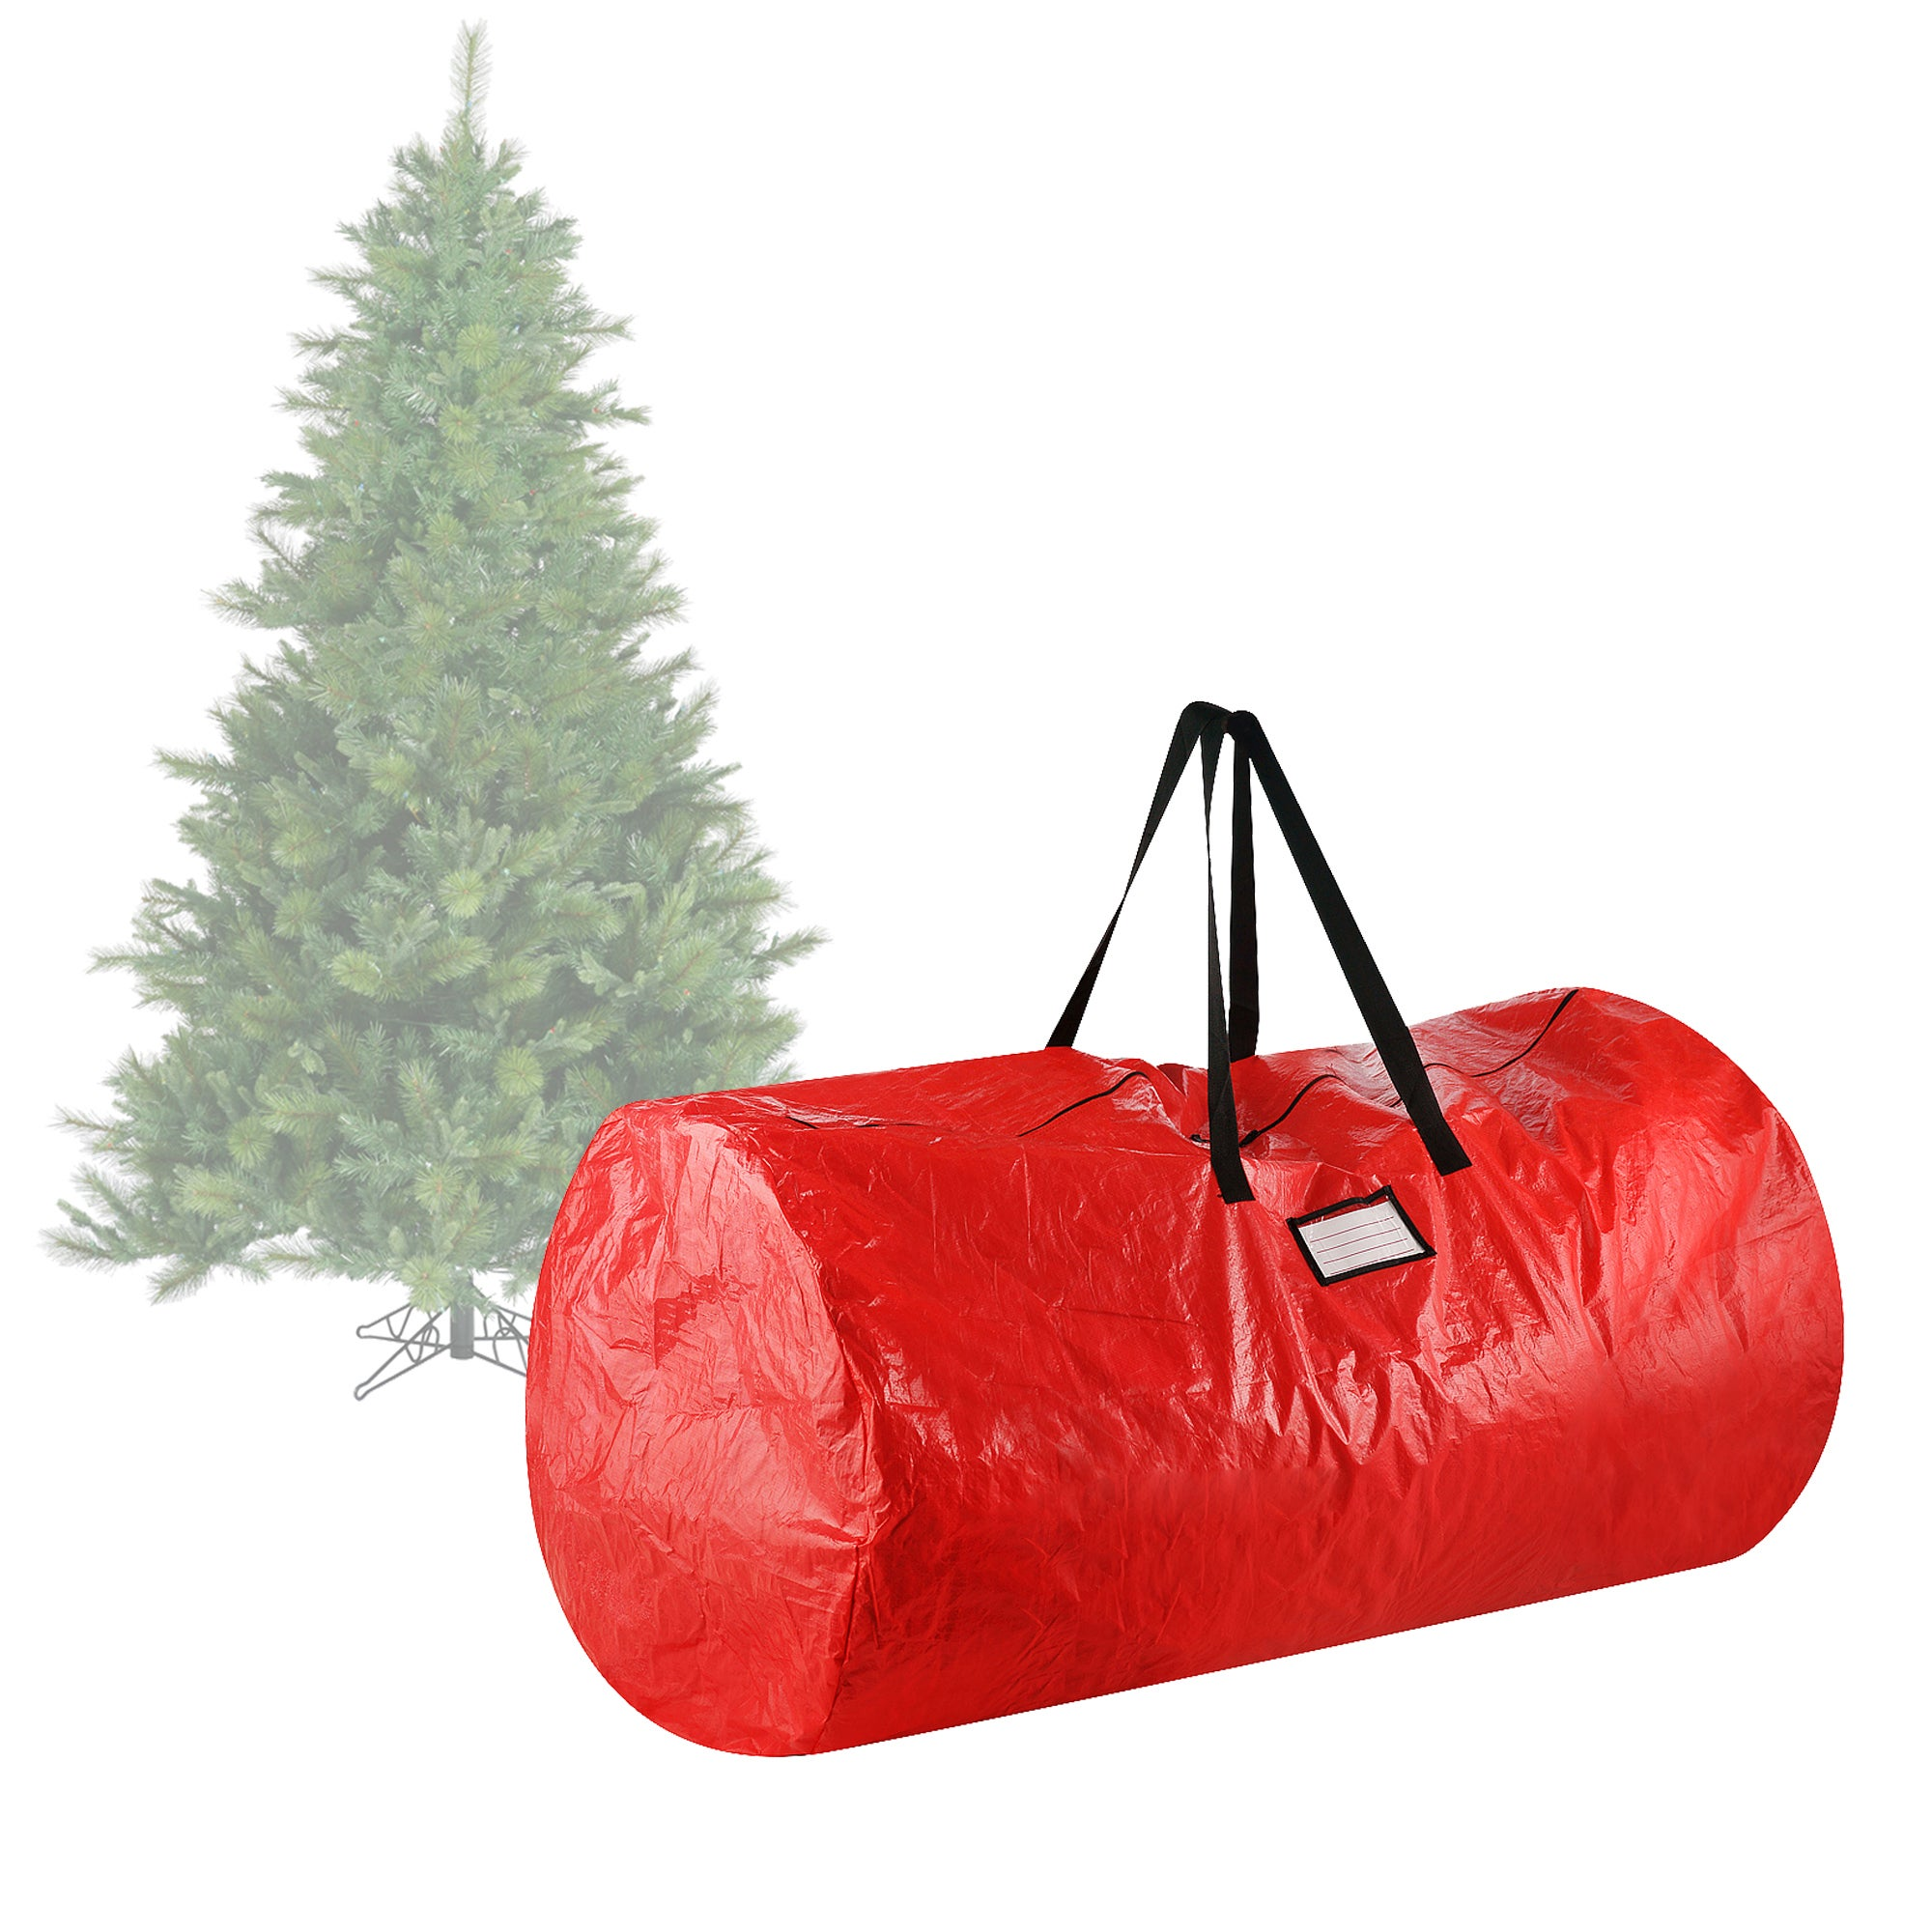 Shop Elf Stor Deluxe Red Fabric/Plastic Holiday Christmas Tree Storage Bag  For 9u0027 Tree   Free Shipping On Orders Over $45   Overstock.com   11816731